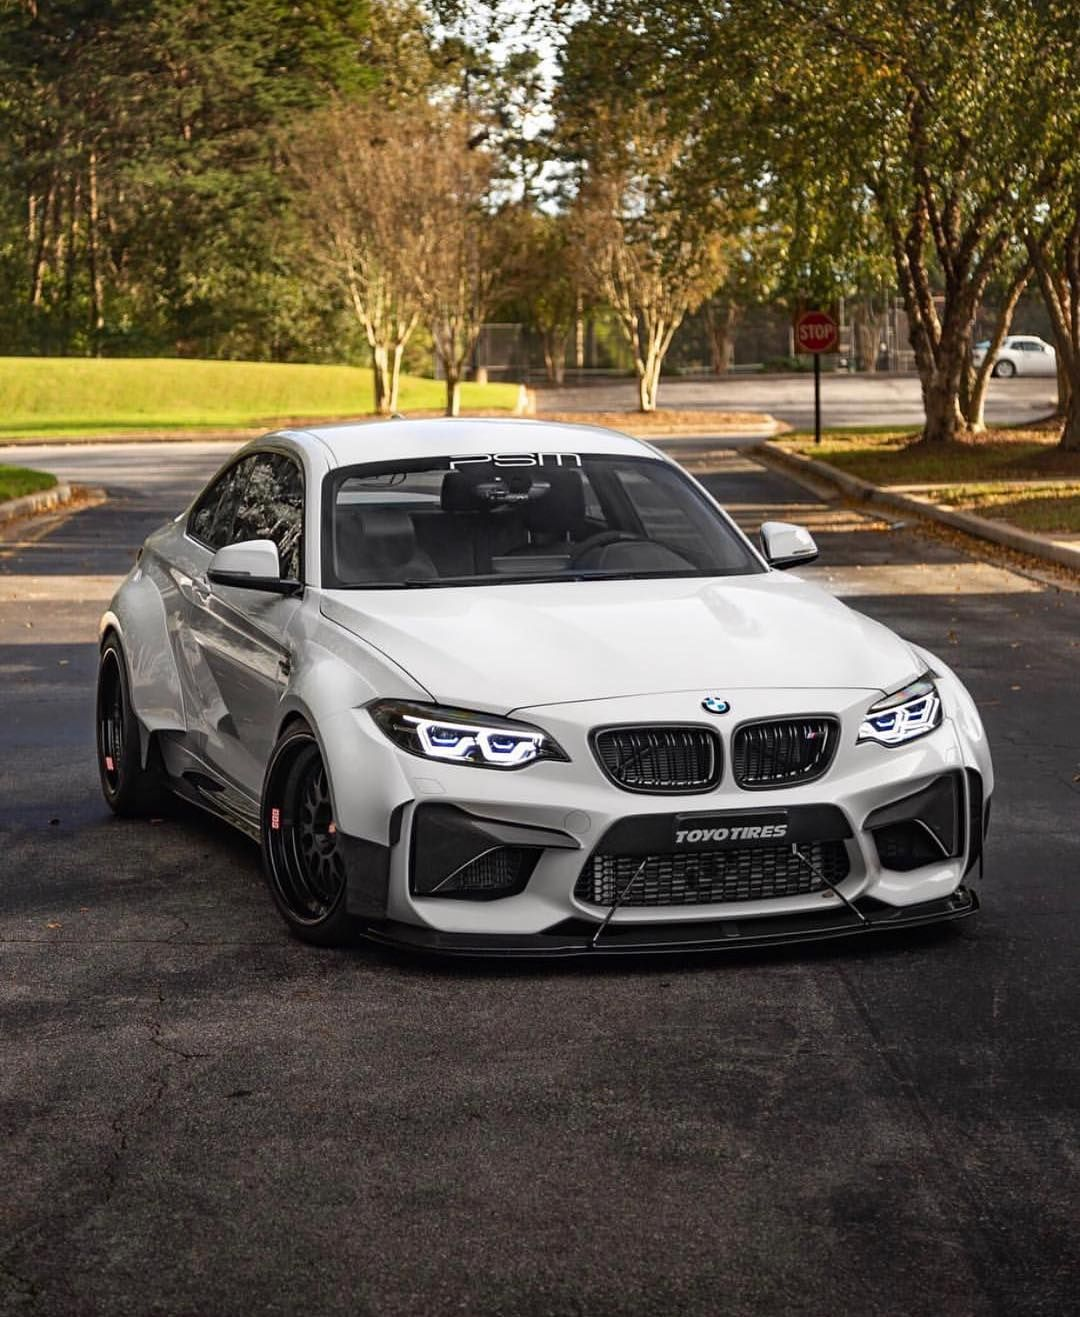 Bmw F87 M2 White Widebody With Images Bmw Ghost Shirt